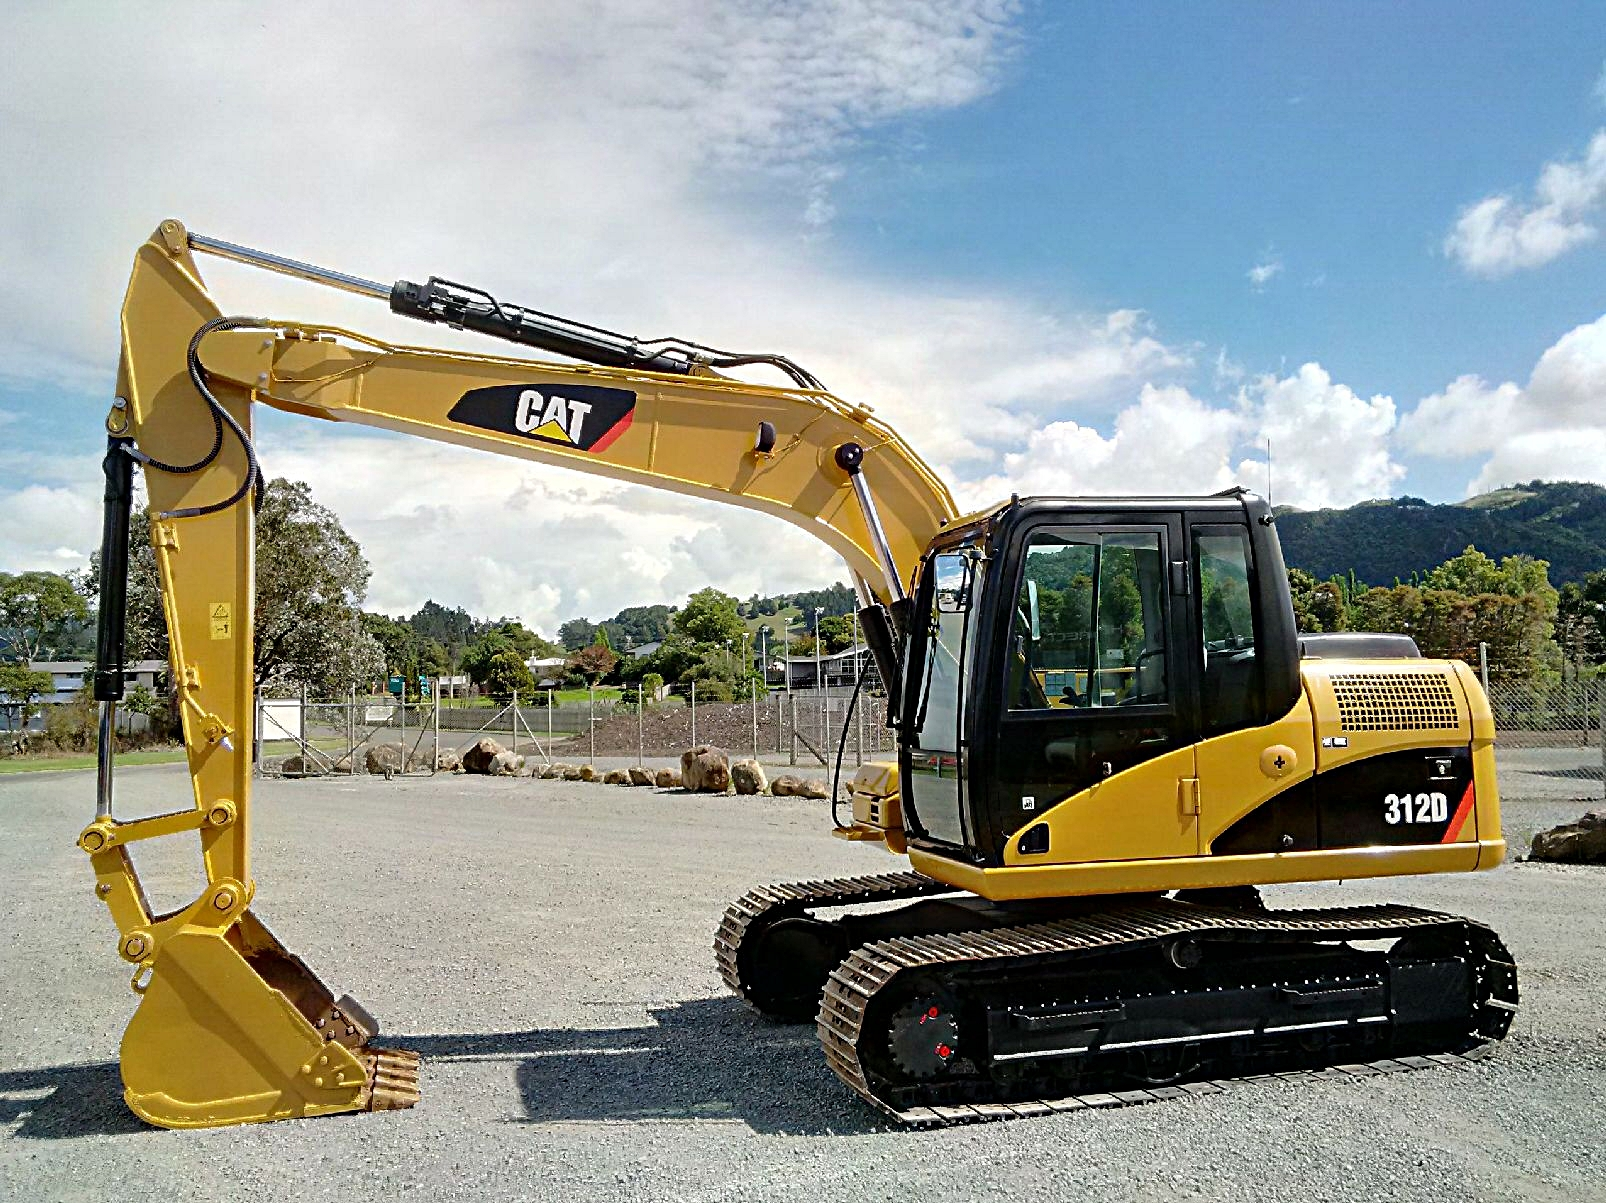 2012 CAT 312D excavator fitted with GP bucket